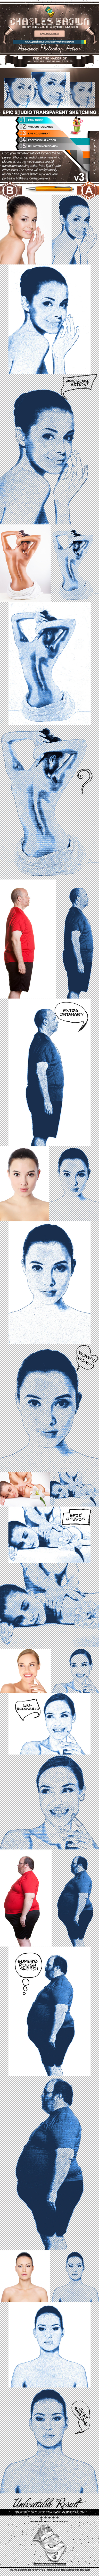 Epic Studio Transparent Sketching 3 - Photo Effects Actions